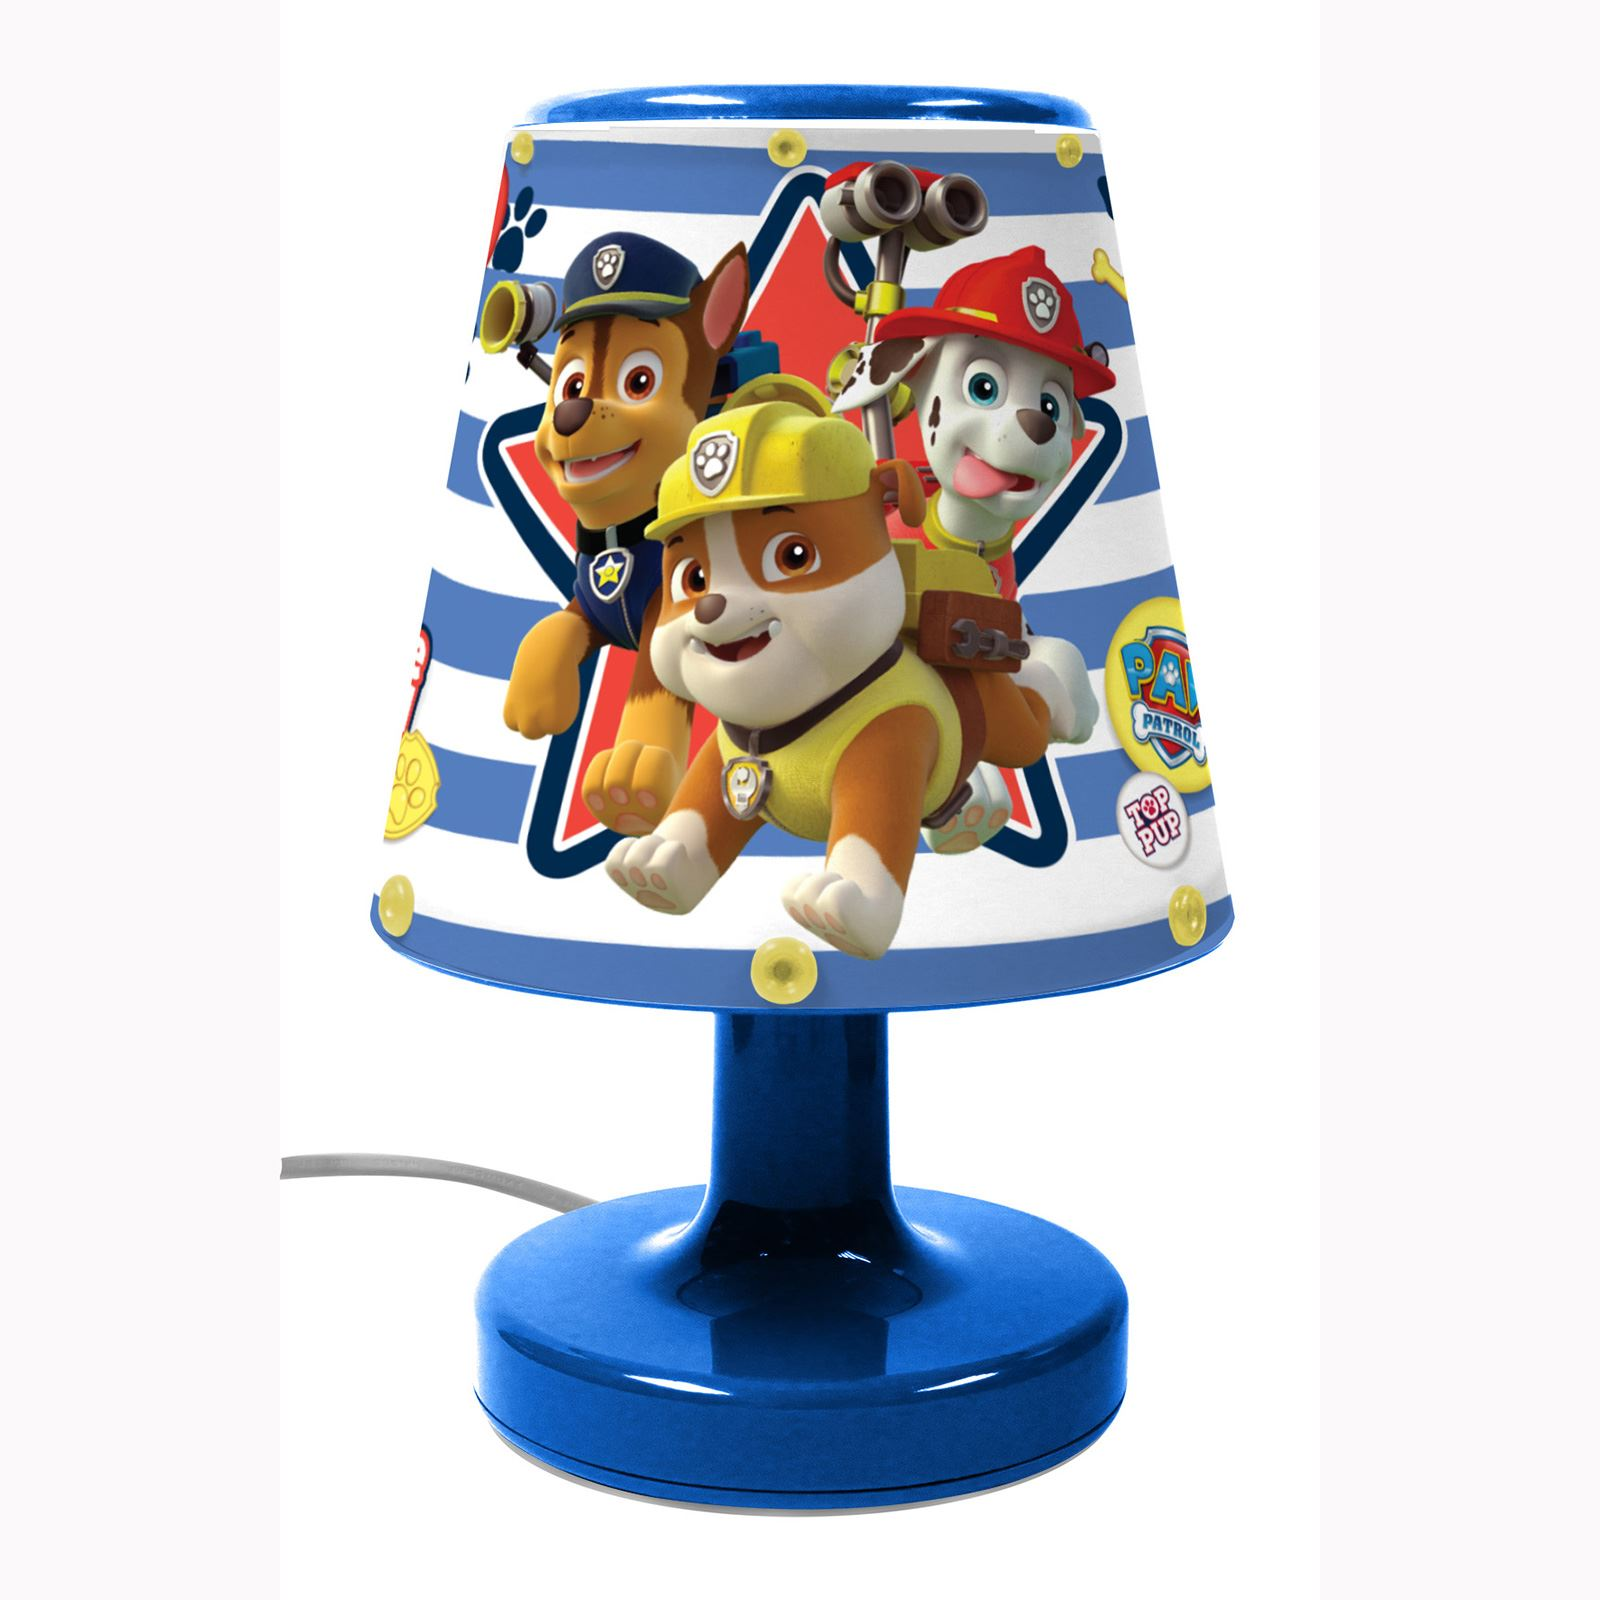 paw patrol kinder schlafzimmer beleuchtung illumi mate lampe mehr 100 offiziell ebay. Black Bedroom Furniture Sets. Home Design Ideas